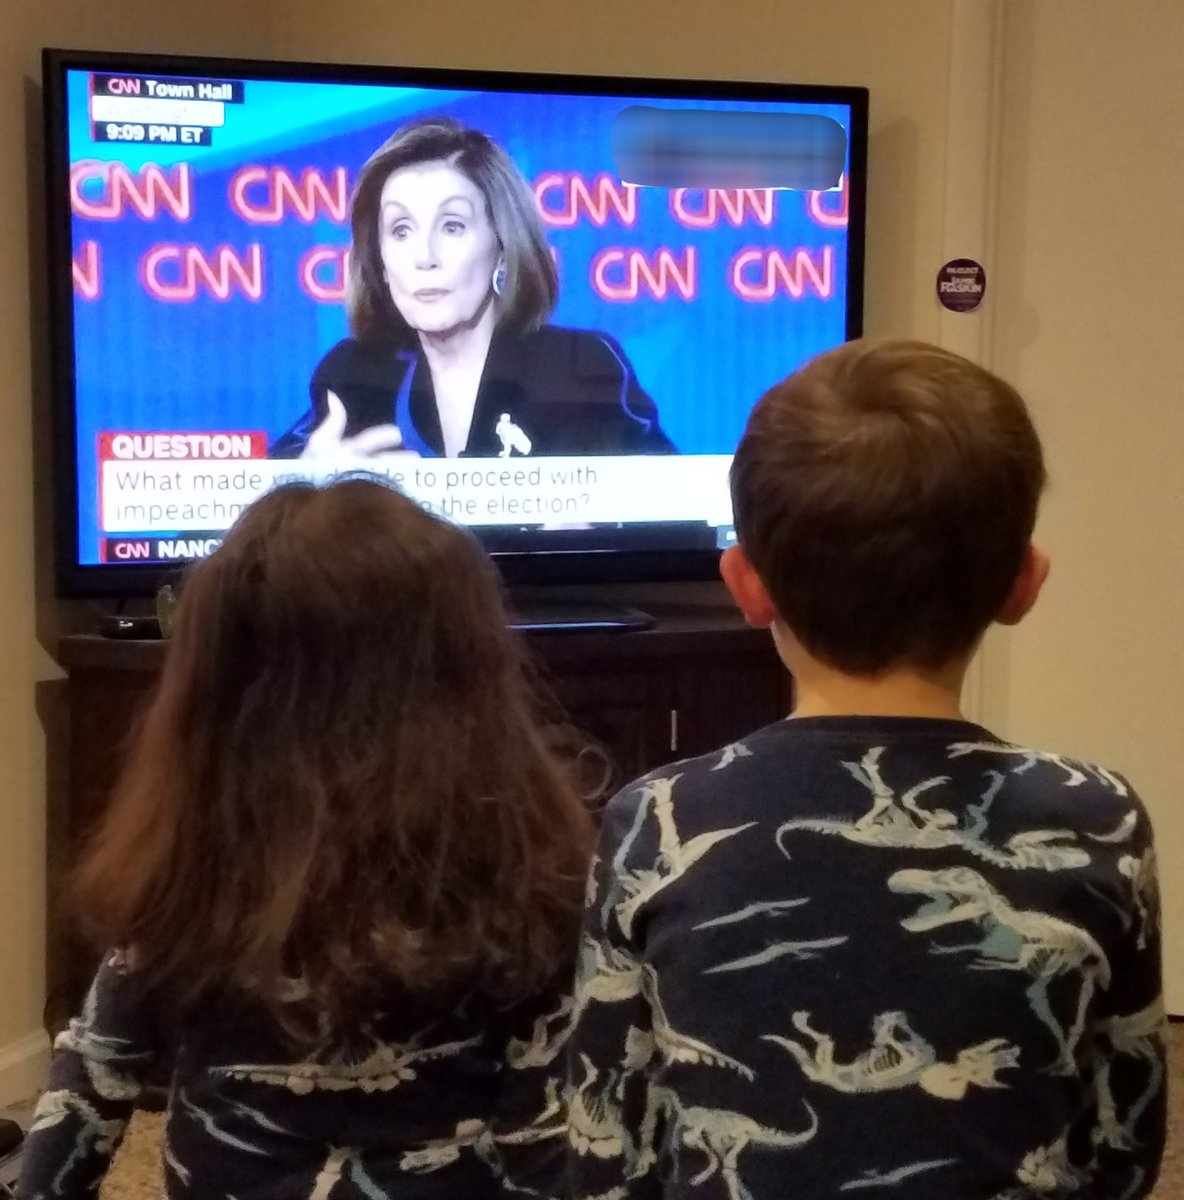 Teaching the kids about leadership and patriotism   #PelosiTownHall  #DontMessWithNancy <br>http://pic.twitter.com/uuvkgSYeF7